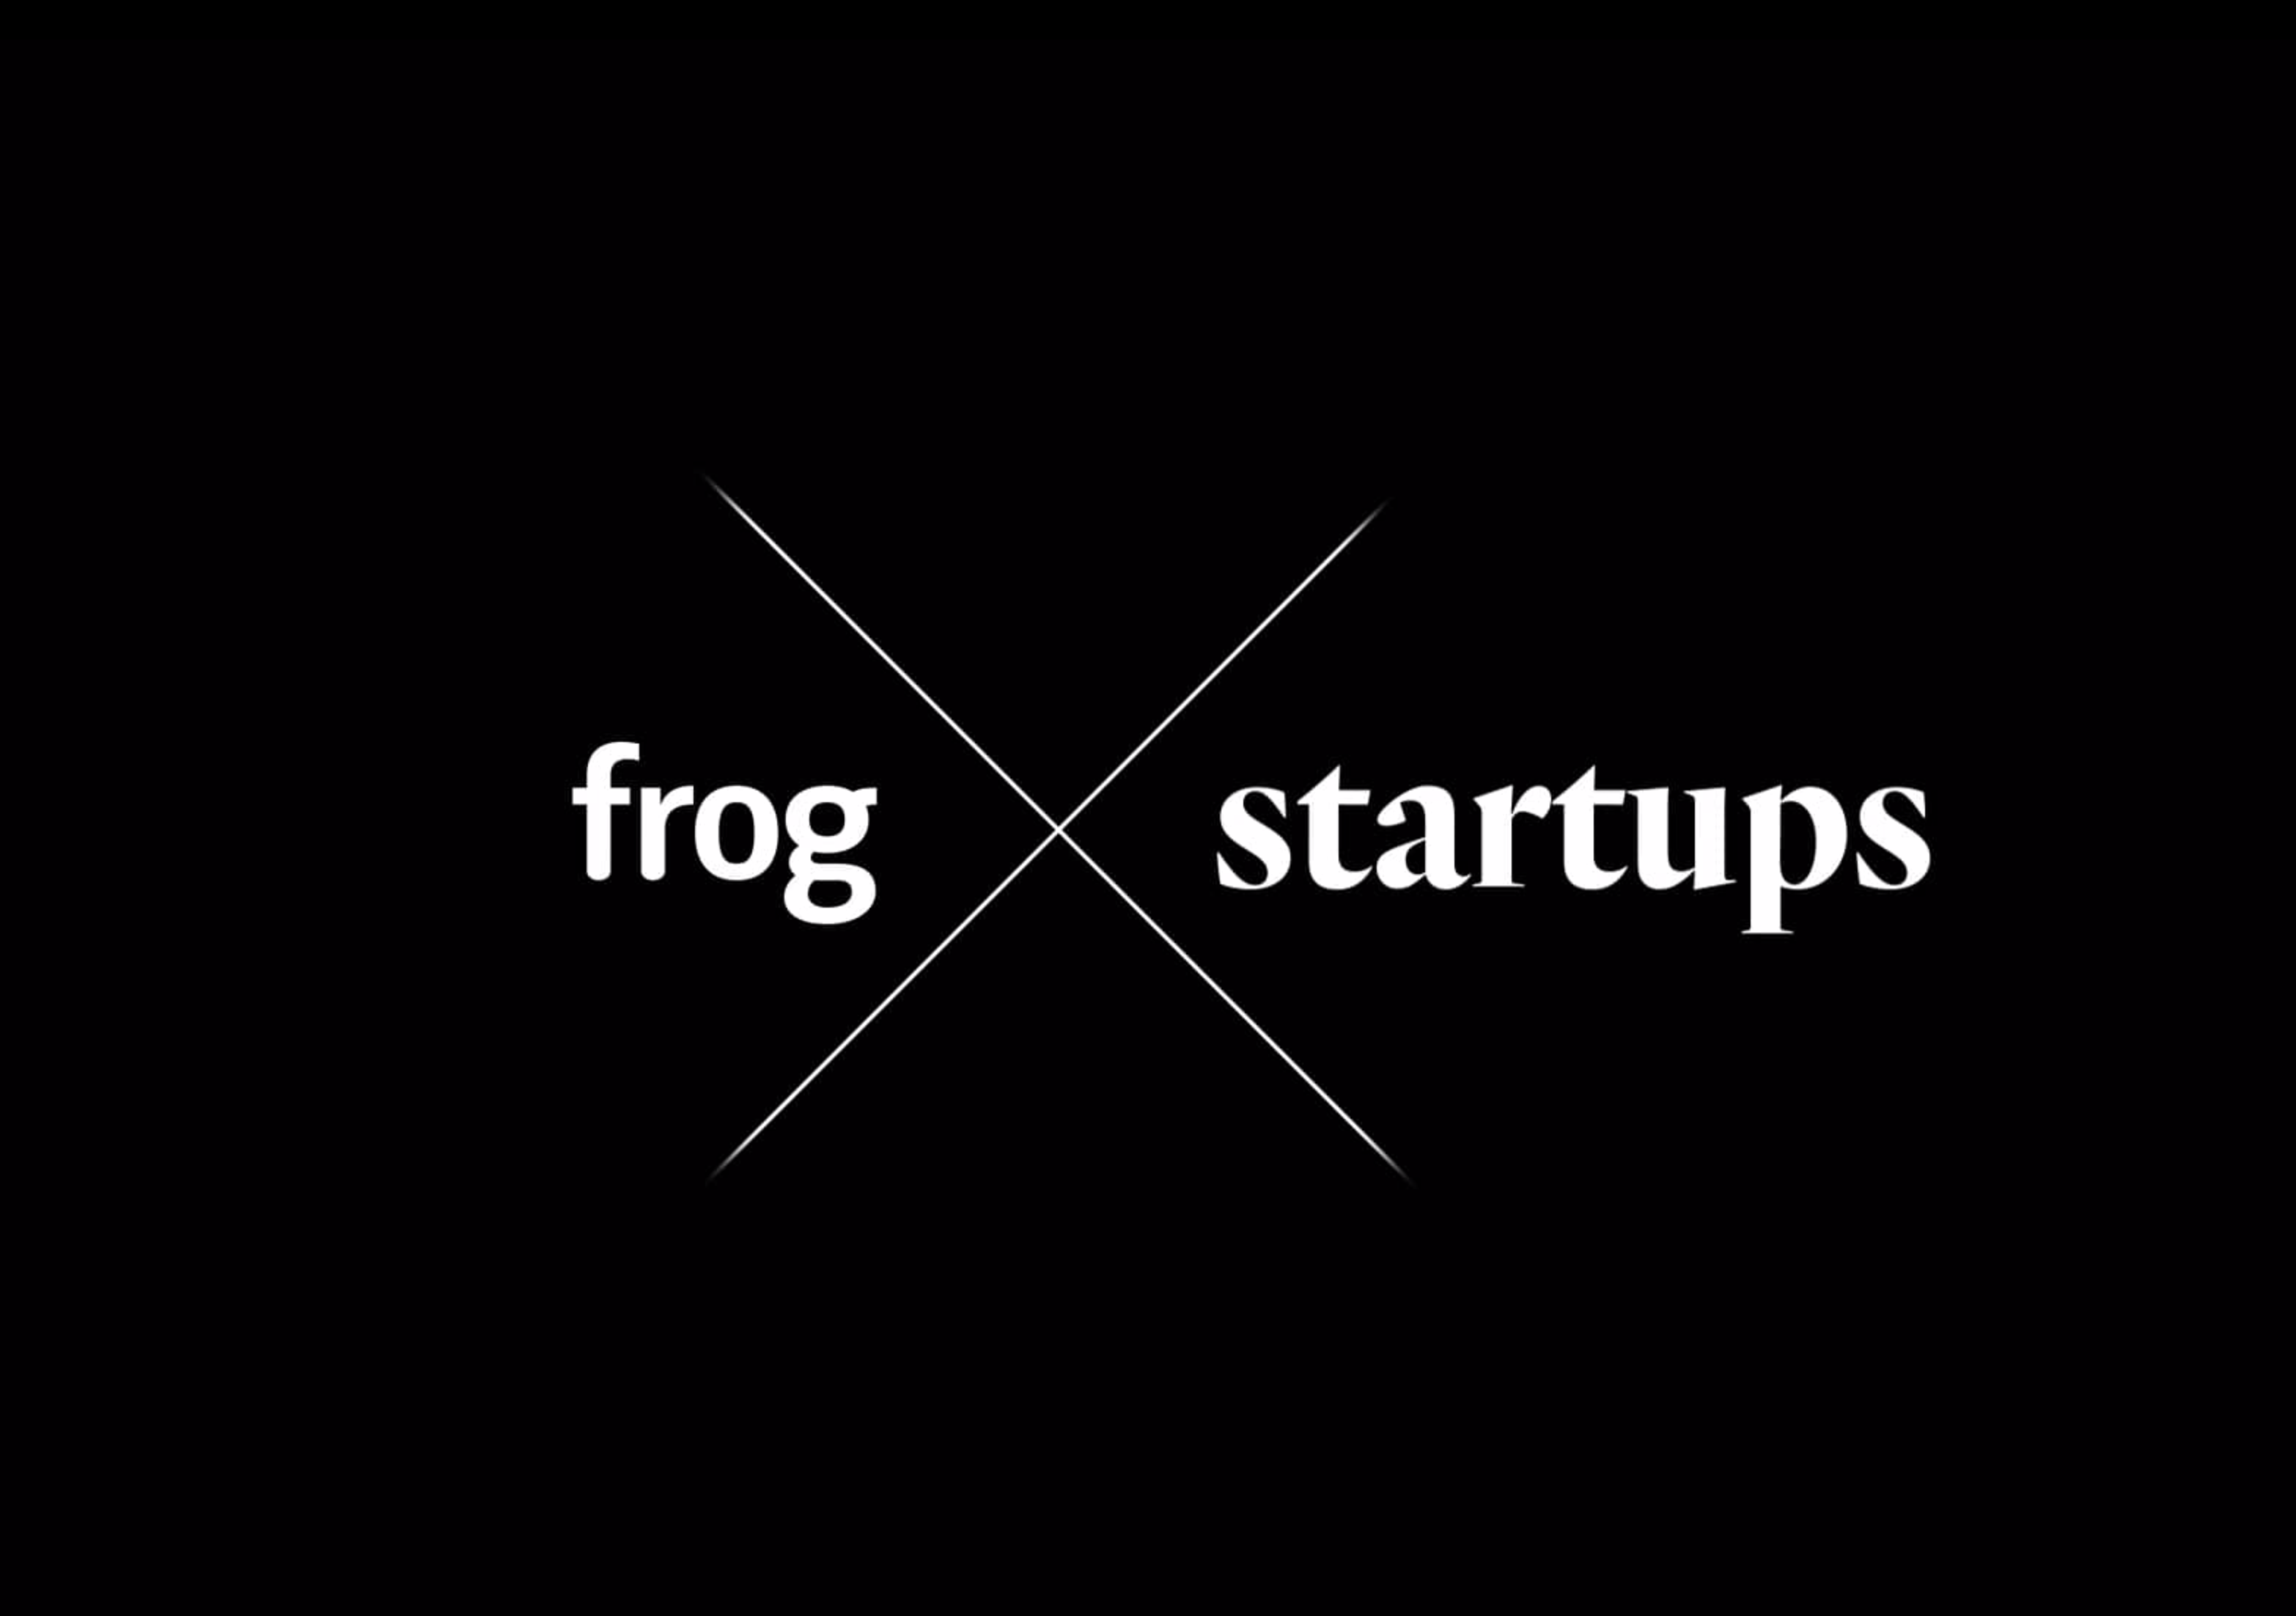 frog Startup Growth